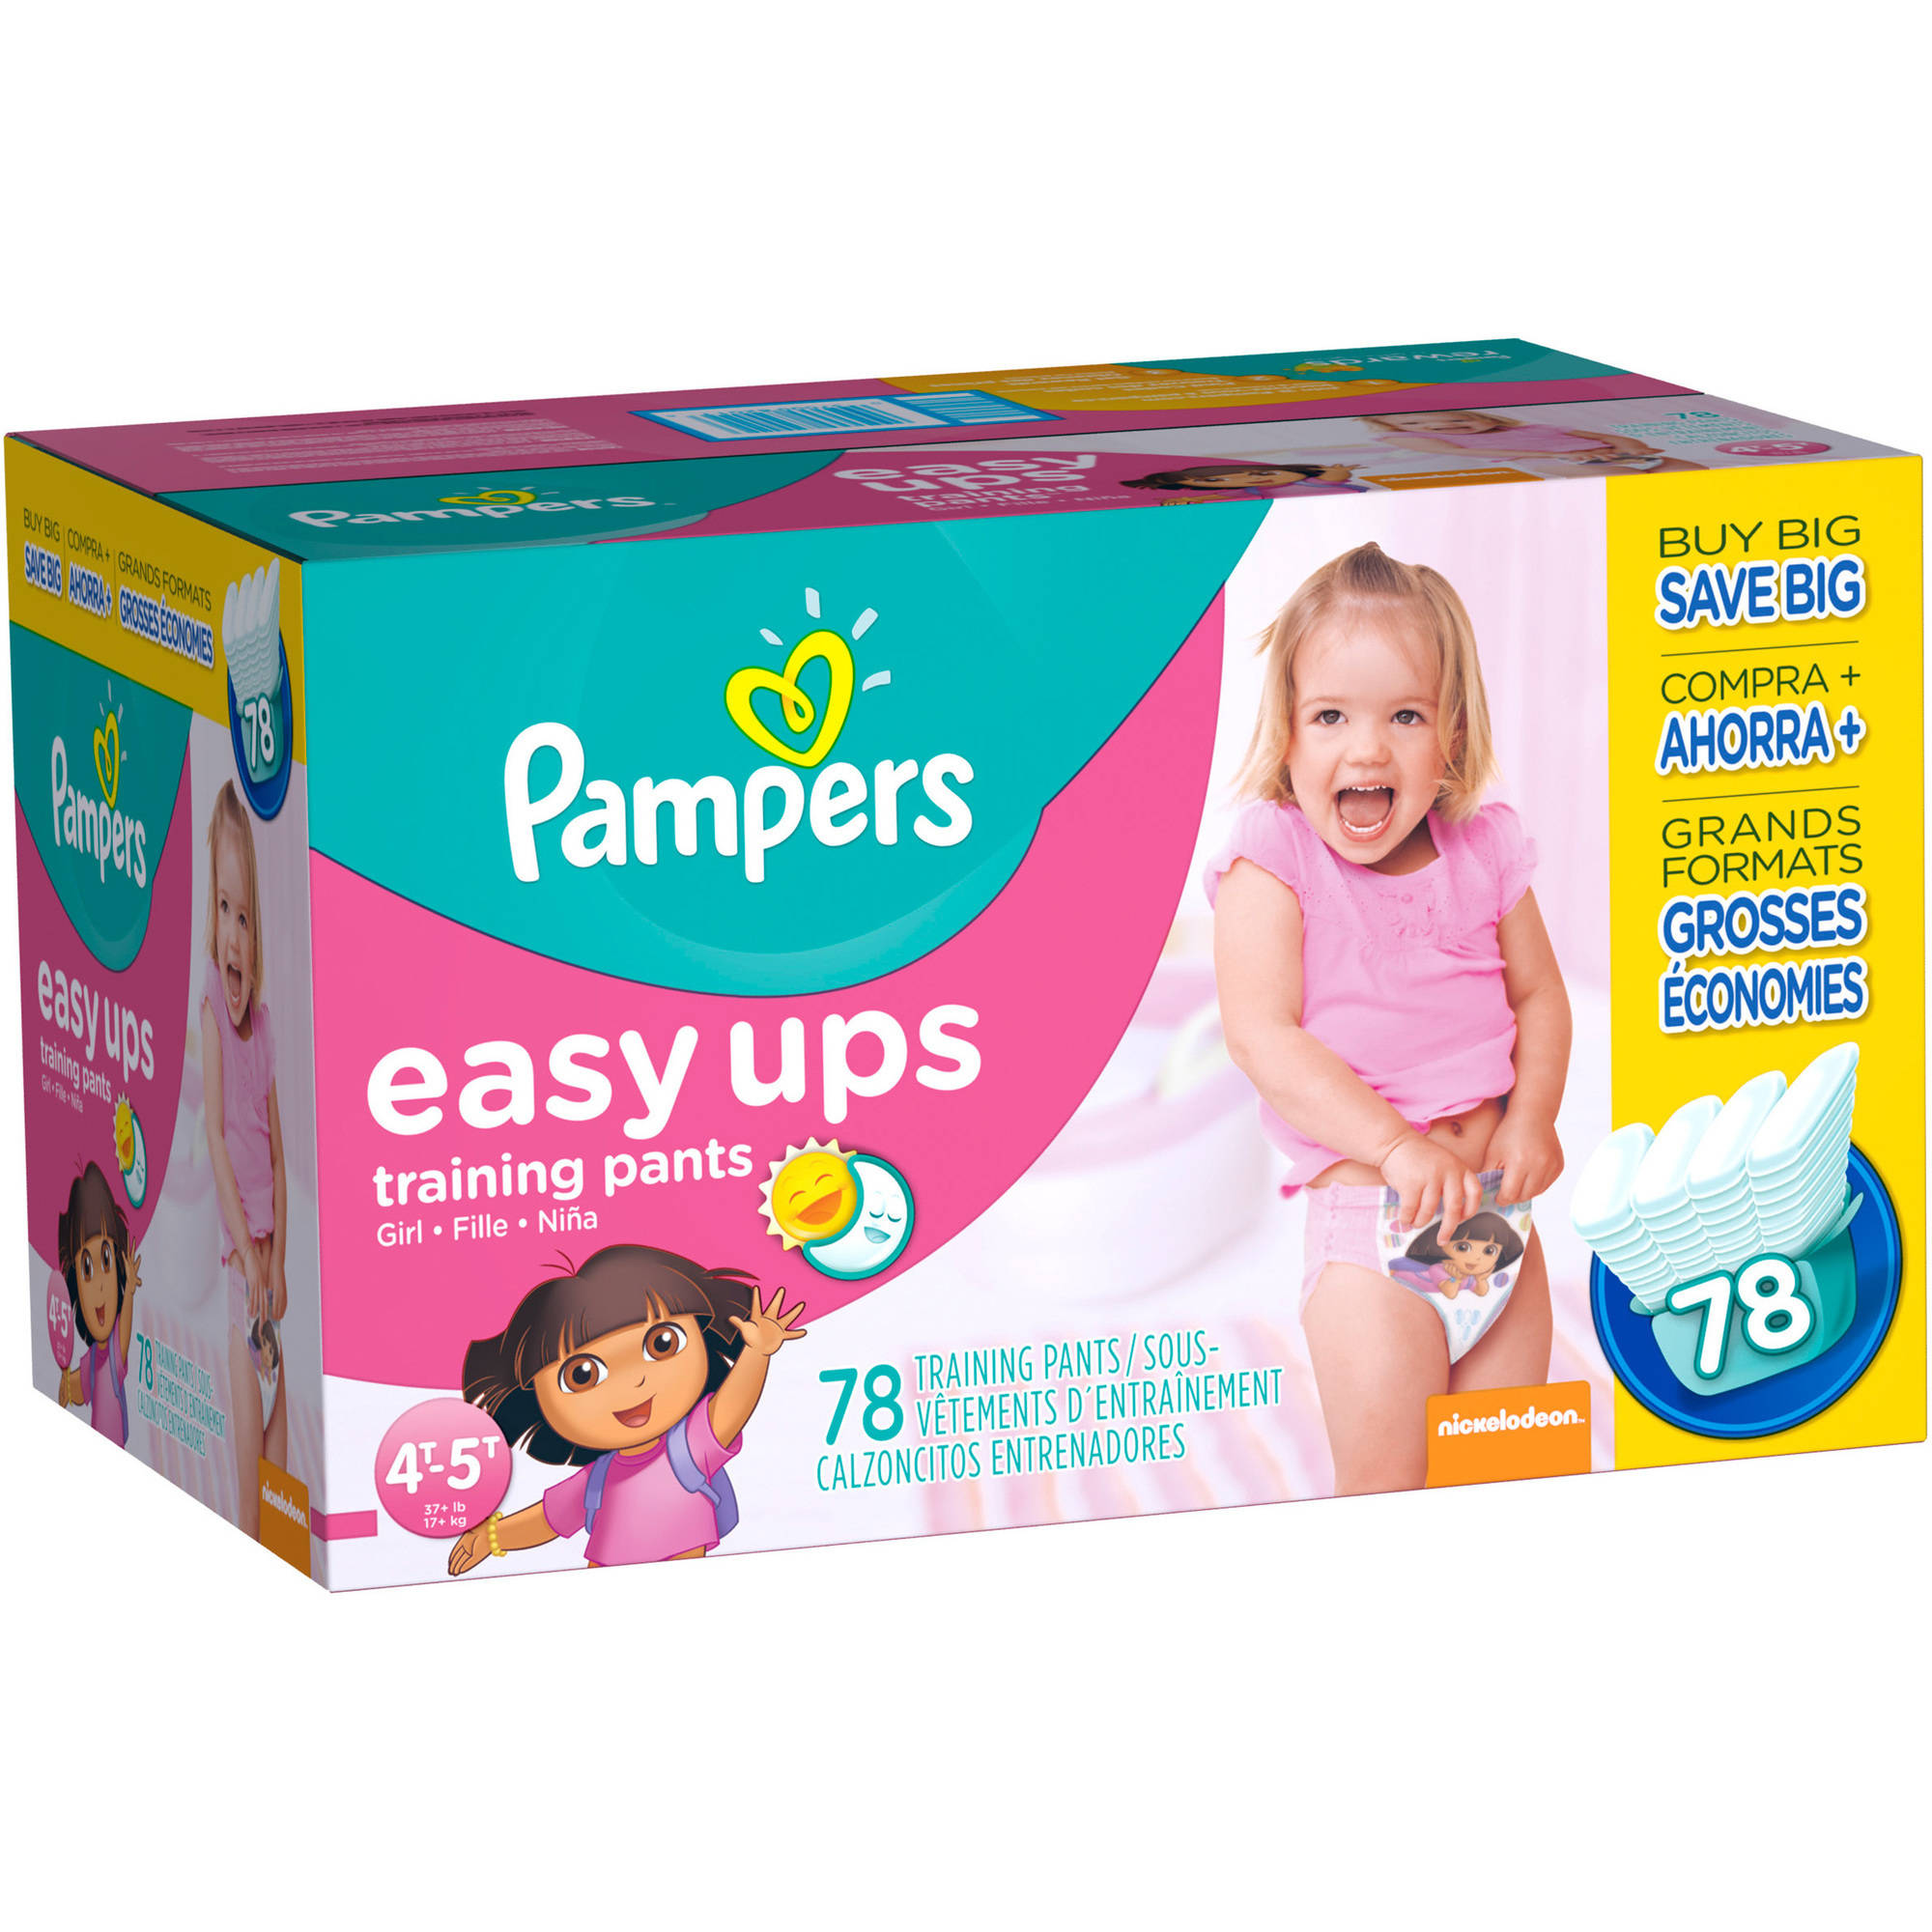 Pampers Easy Ups Training Pants Pull On for Girls Size 4 (2T-3T) 26 ea 2pk See more like this Pampers Easy Ups Training Girls Underwear, Size 6 (4T-5T), Ct (New) Brand New.